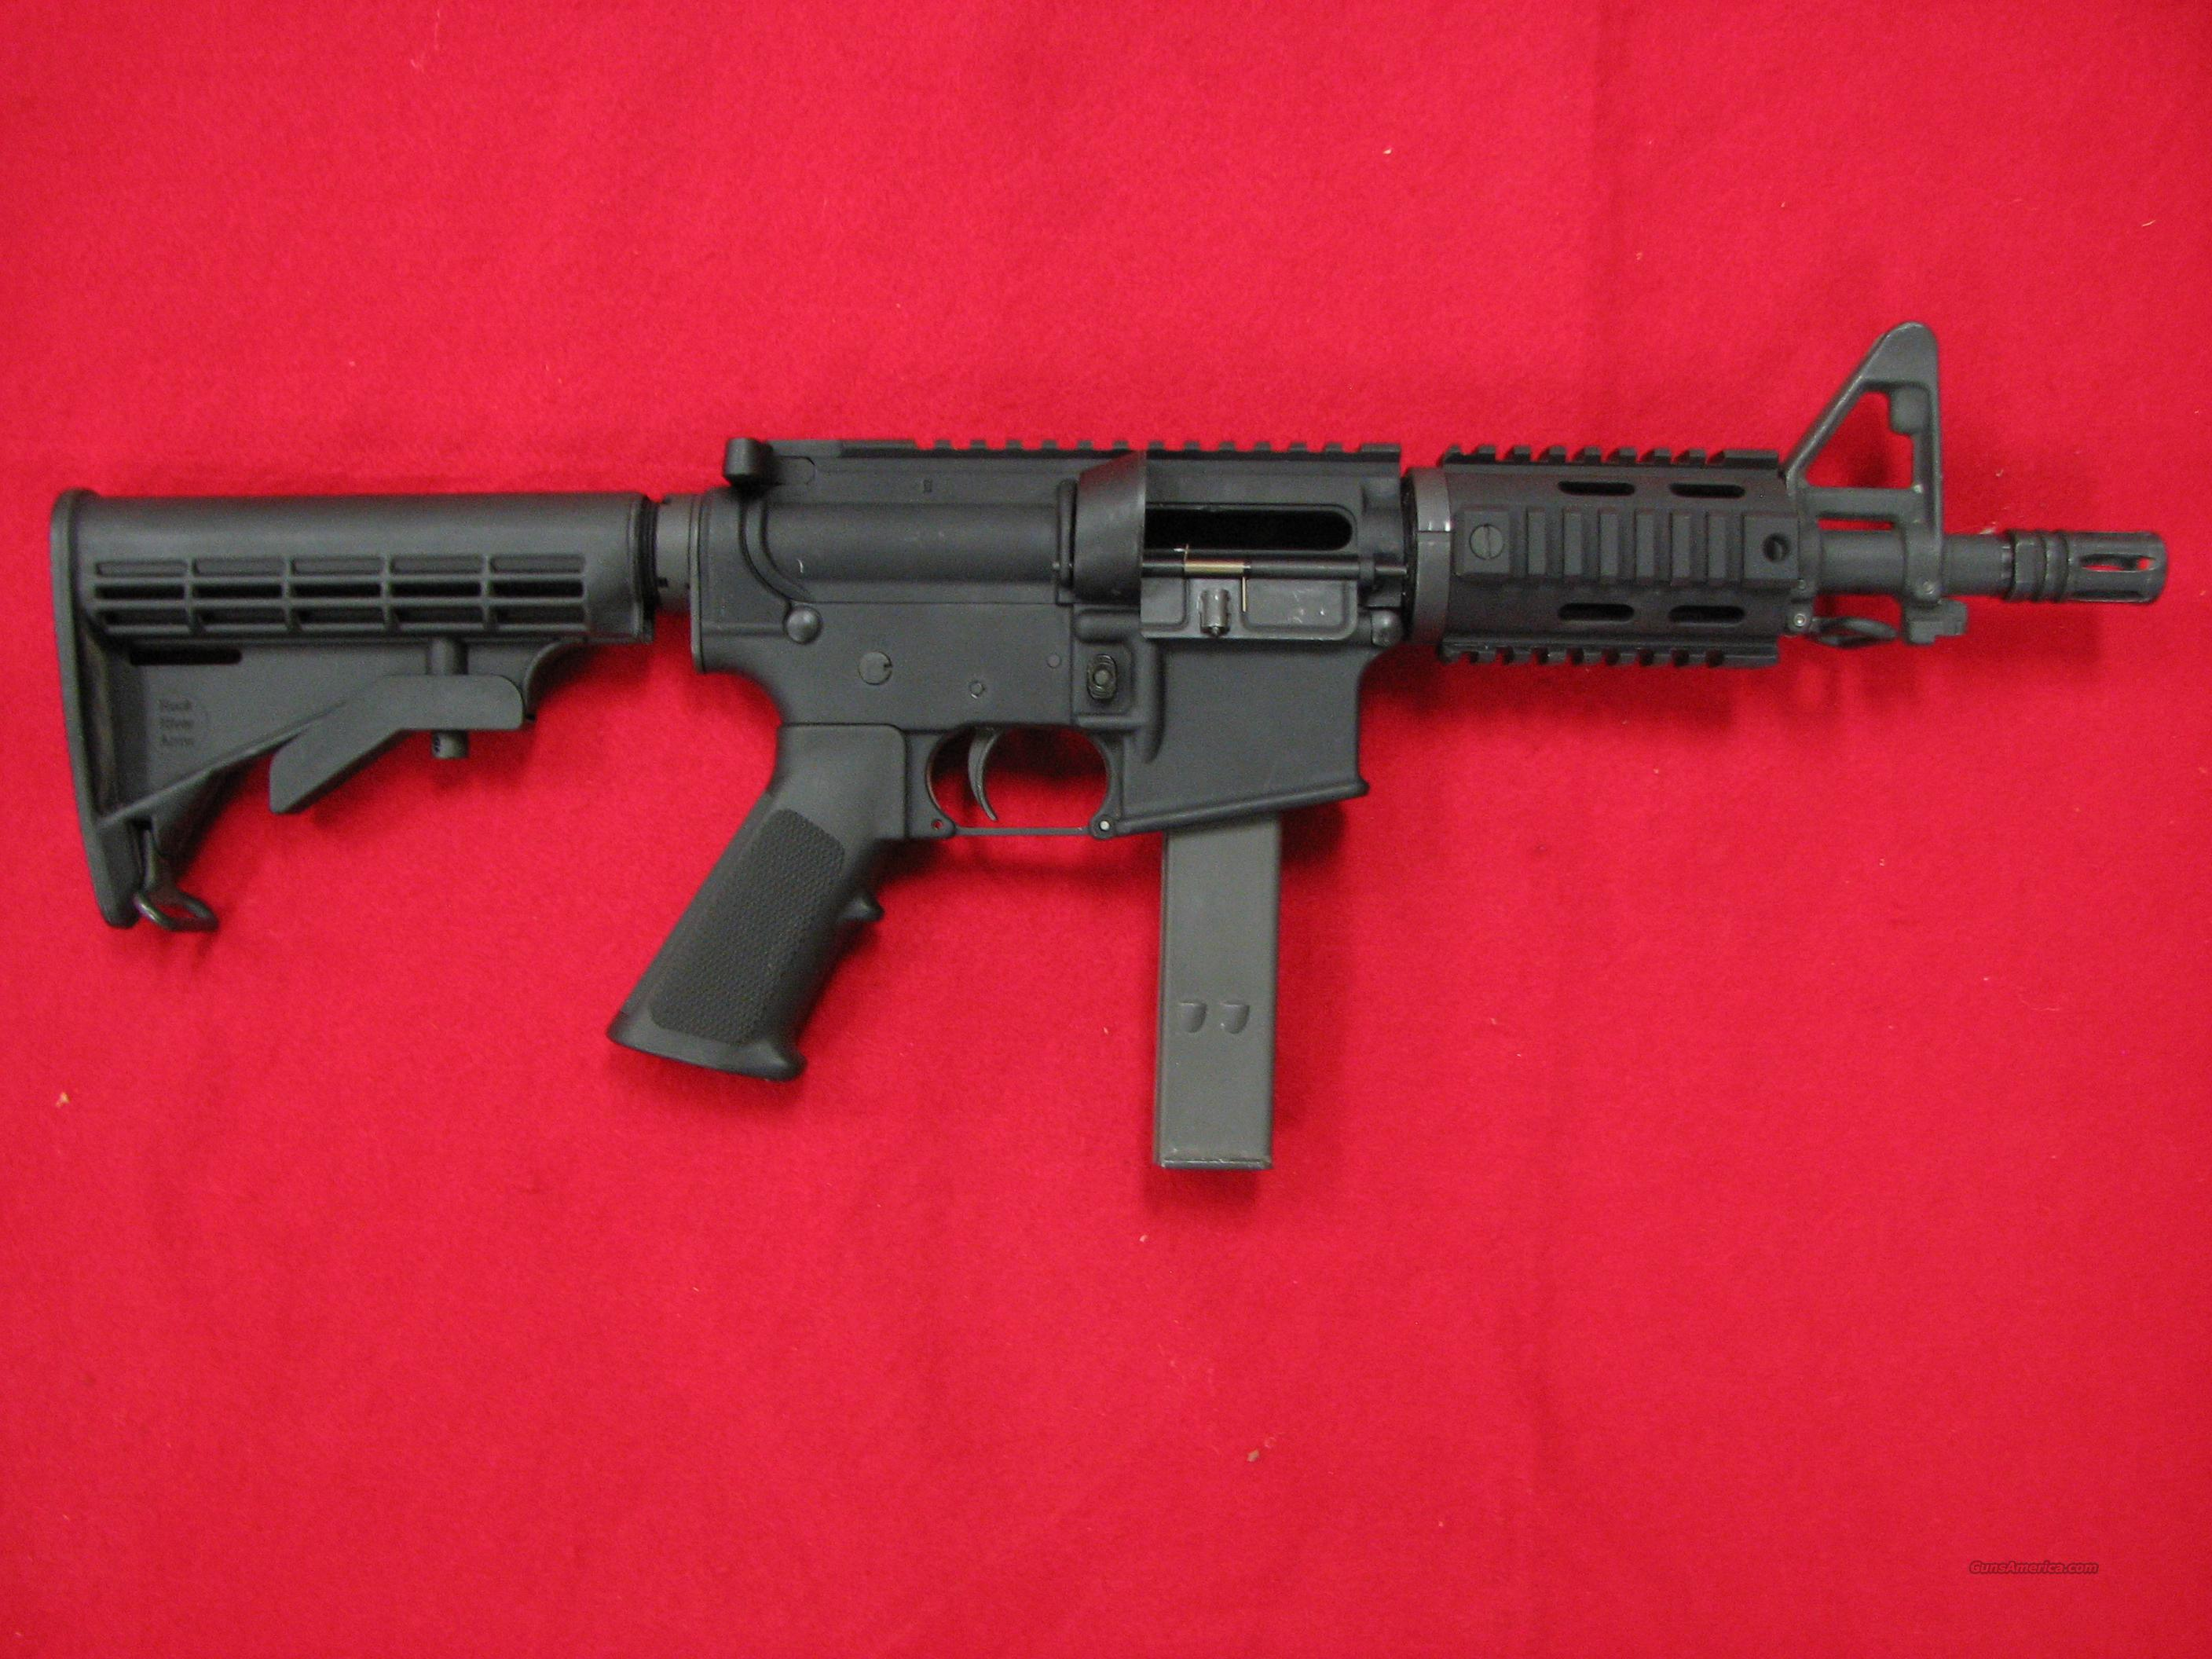 Used Patriot For Sale >> Rock River Arms 9mm Carbine SBR Class III for sale